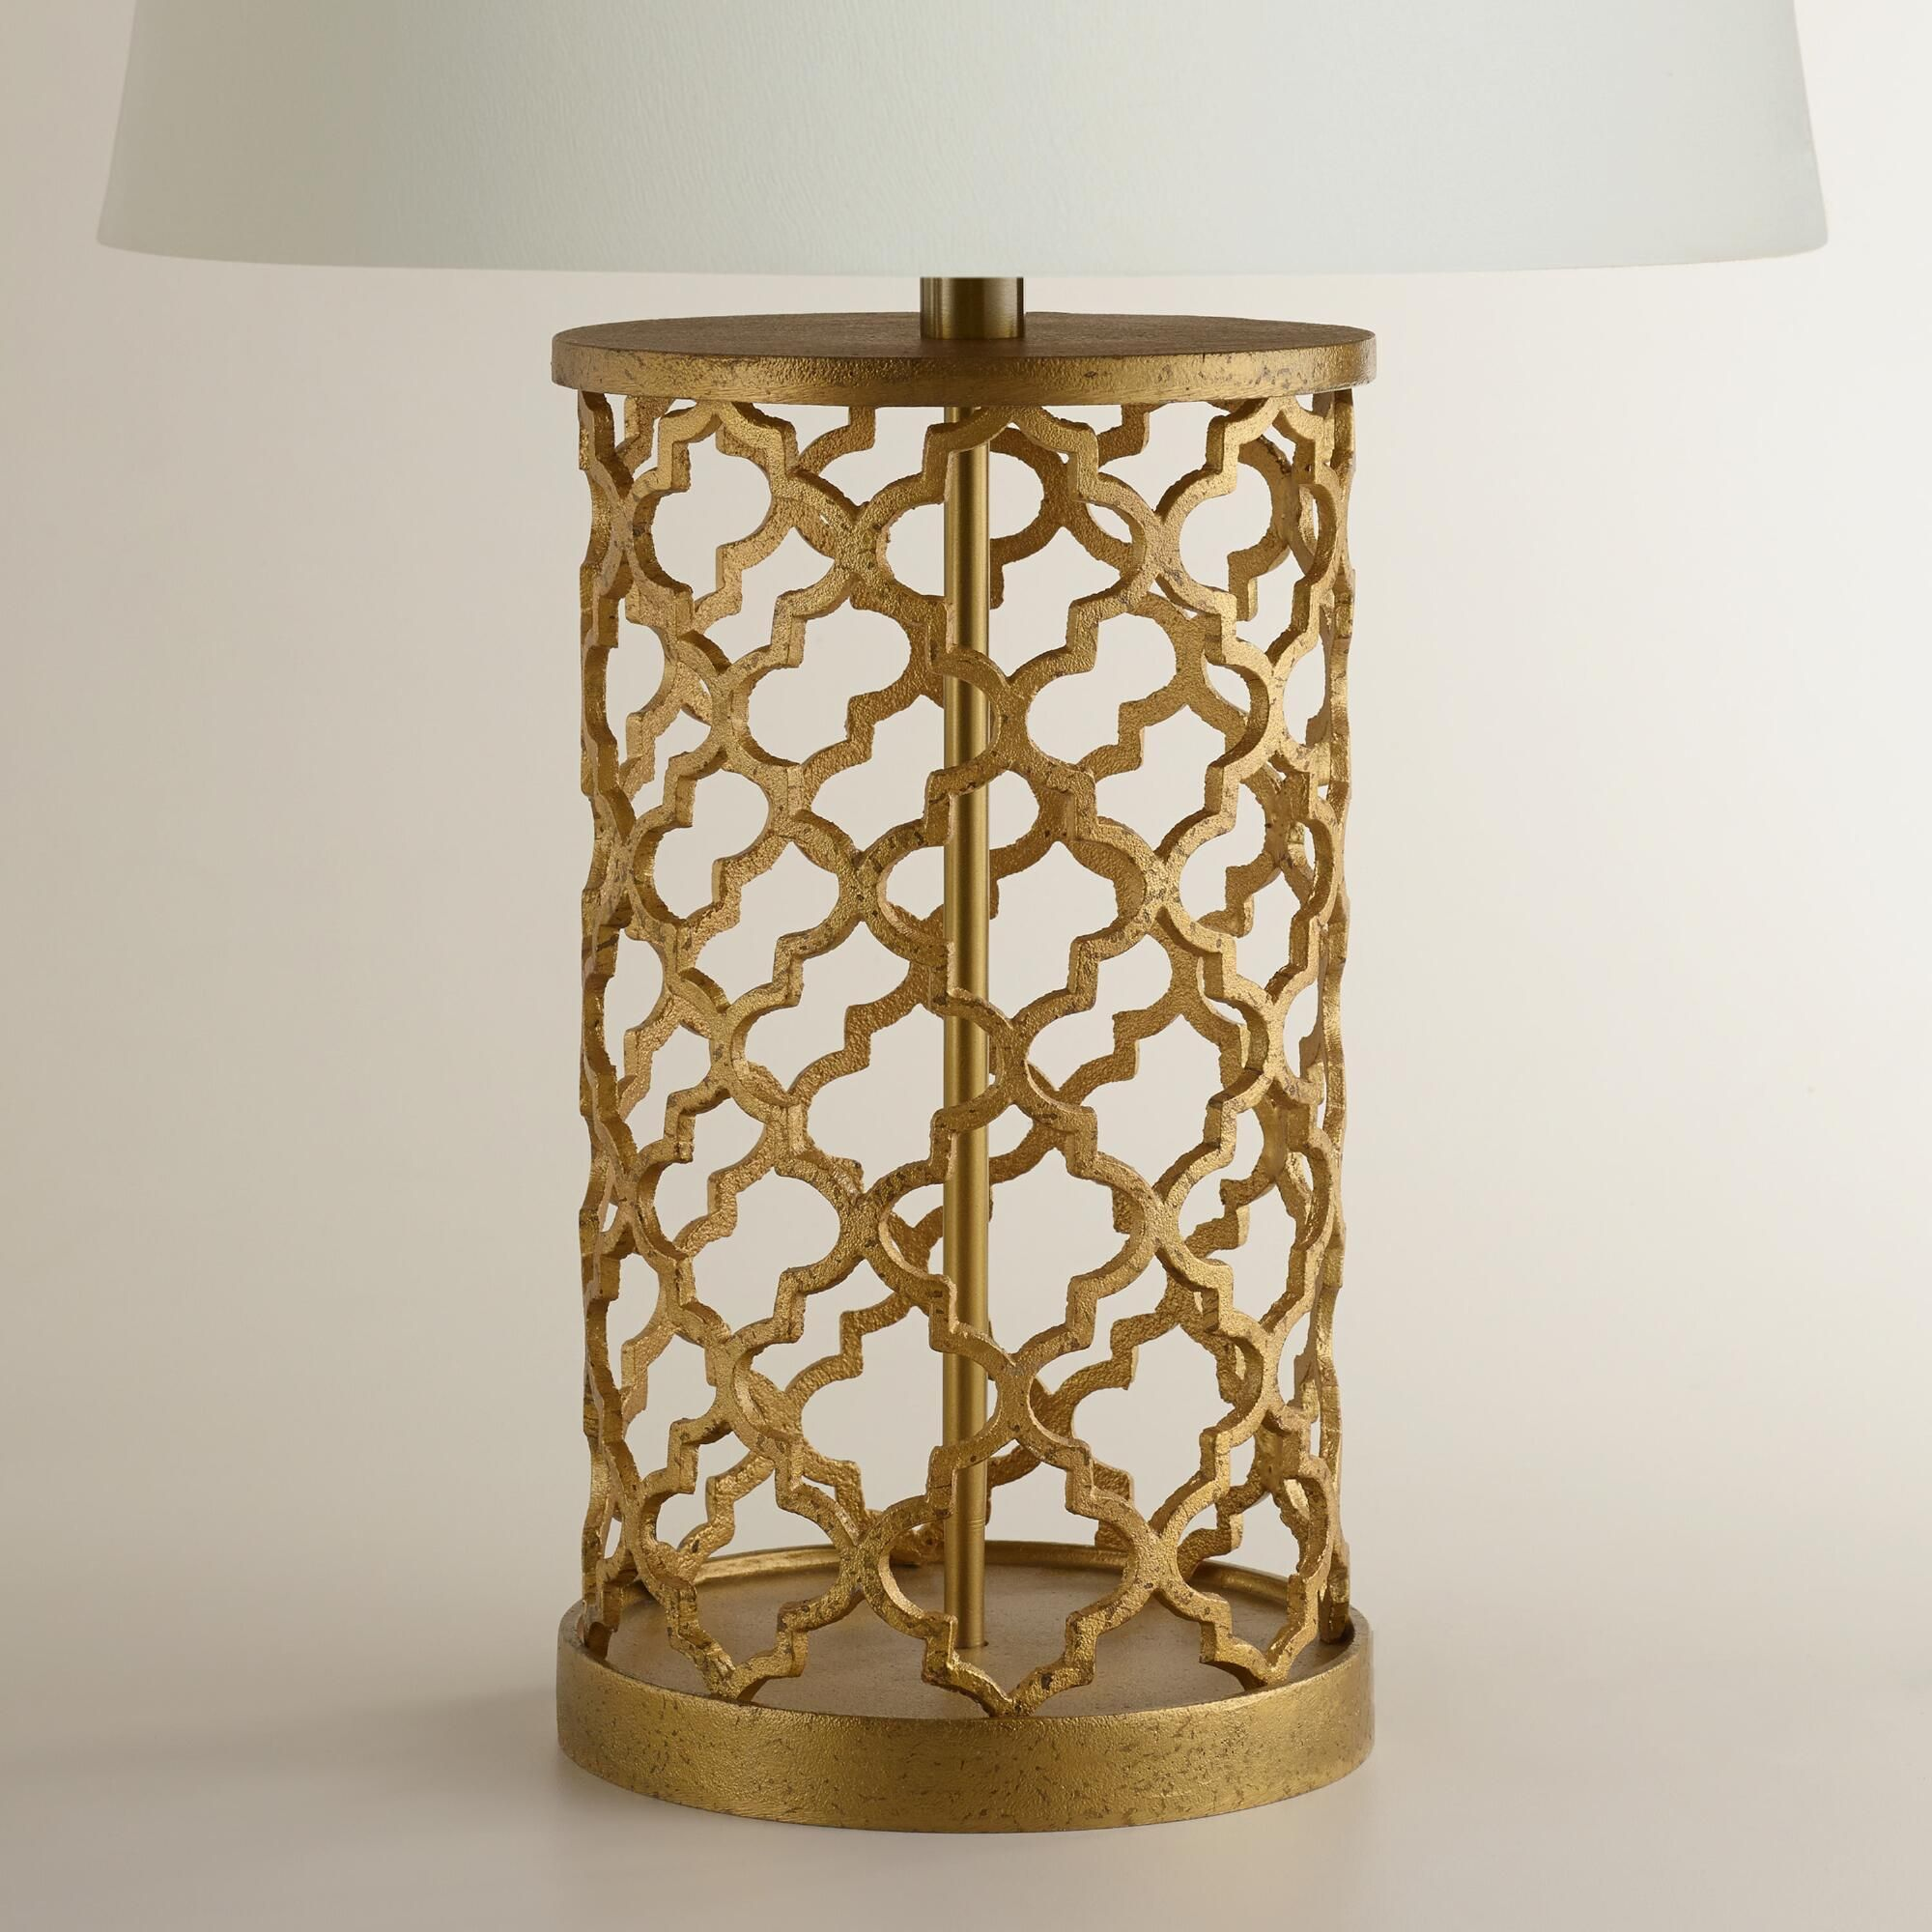 $50 plus shade. Distressed Gold Moroccan Table Lamp Base | World Market